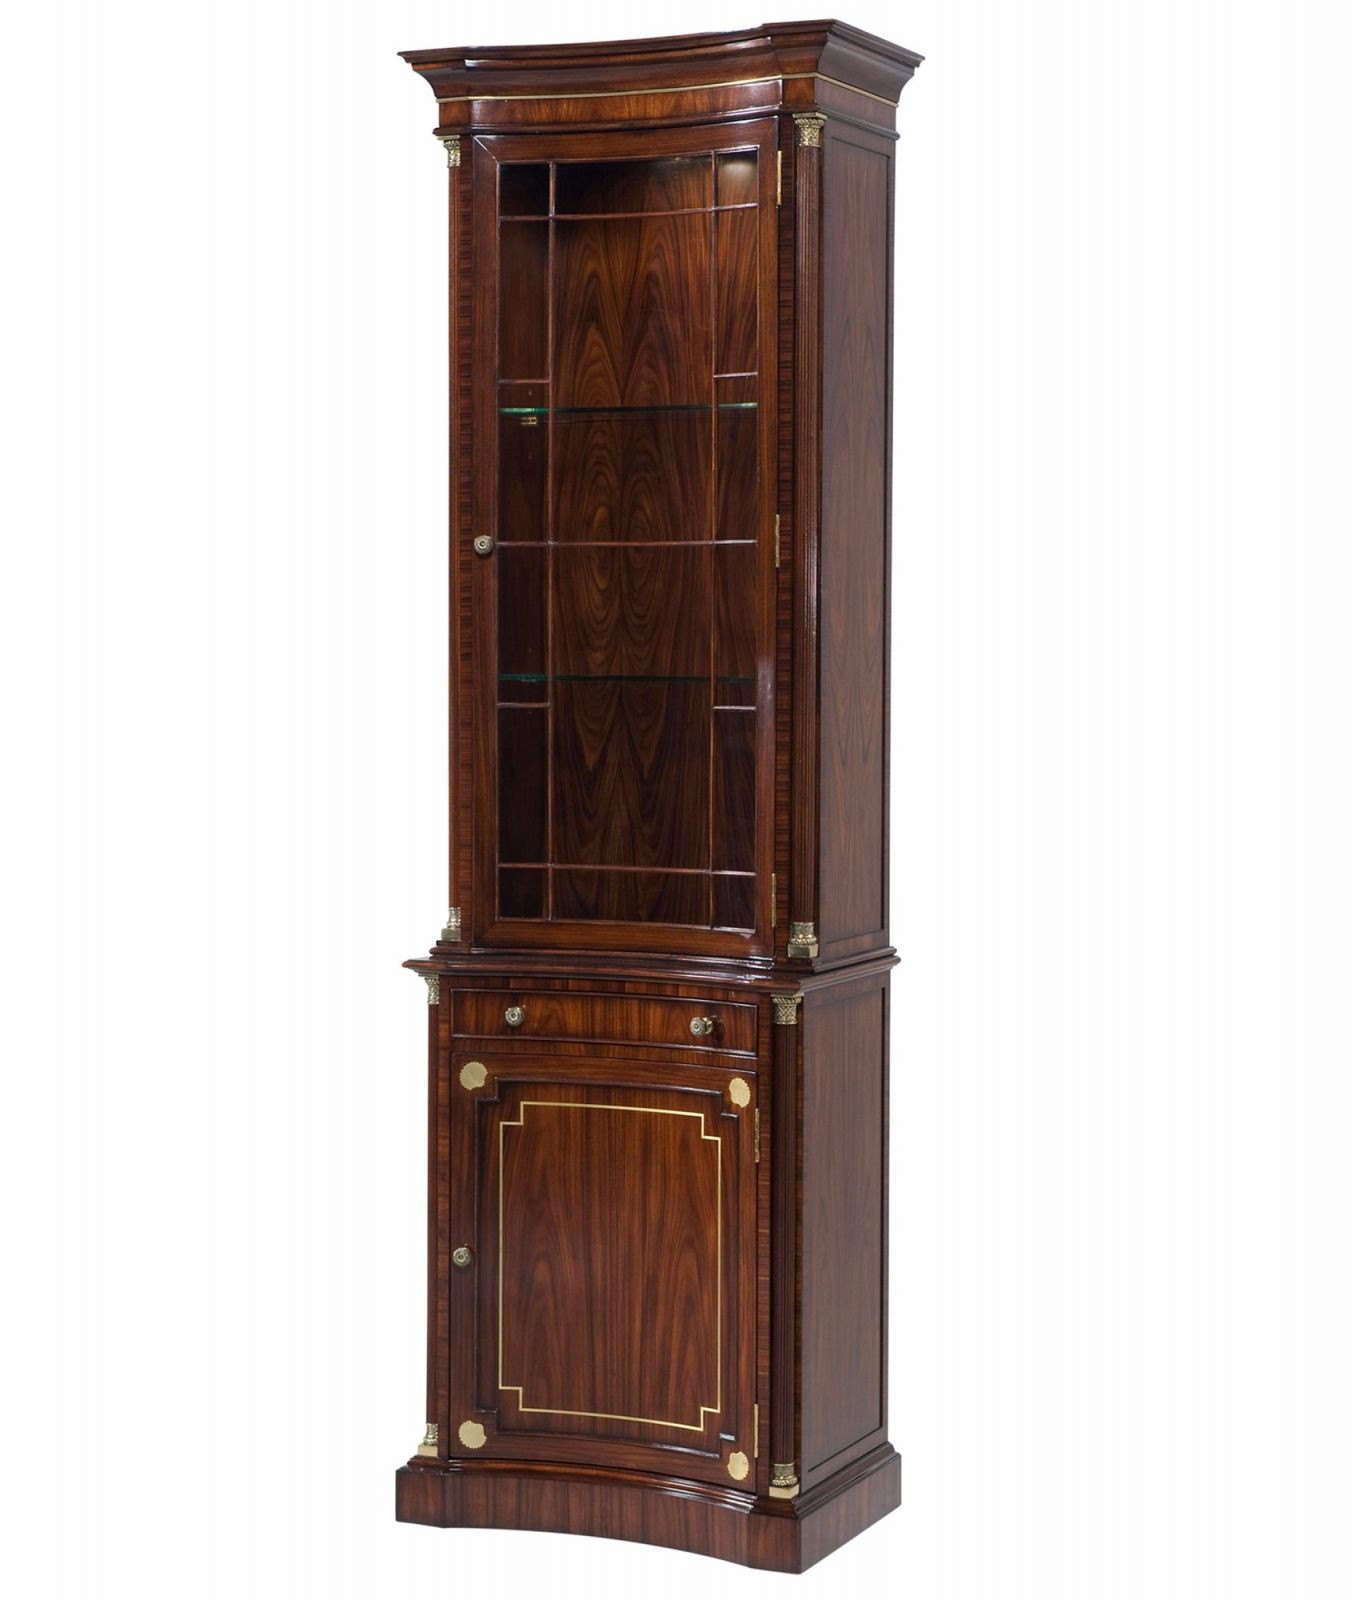 Mahogany narrow display cabinet